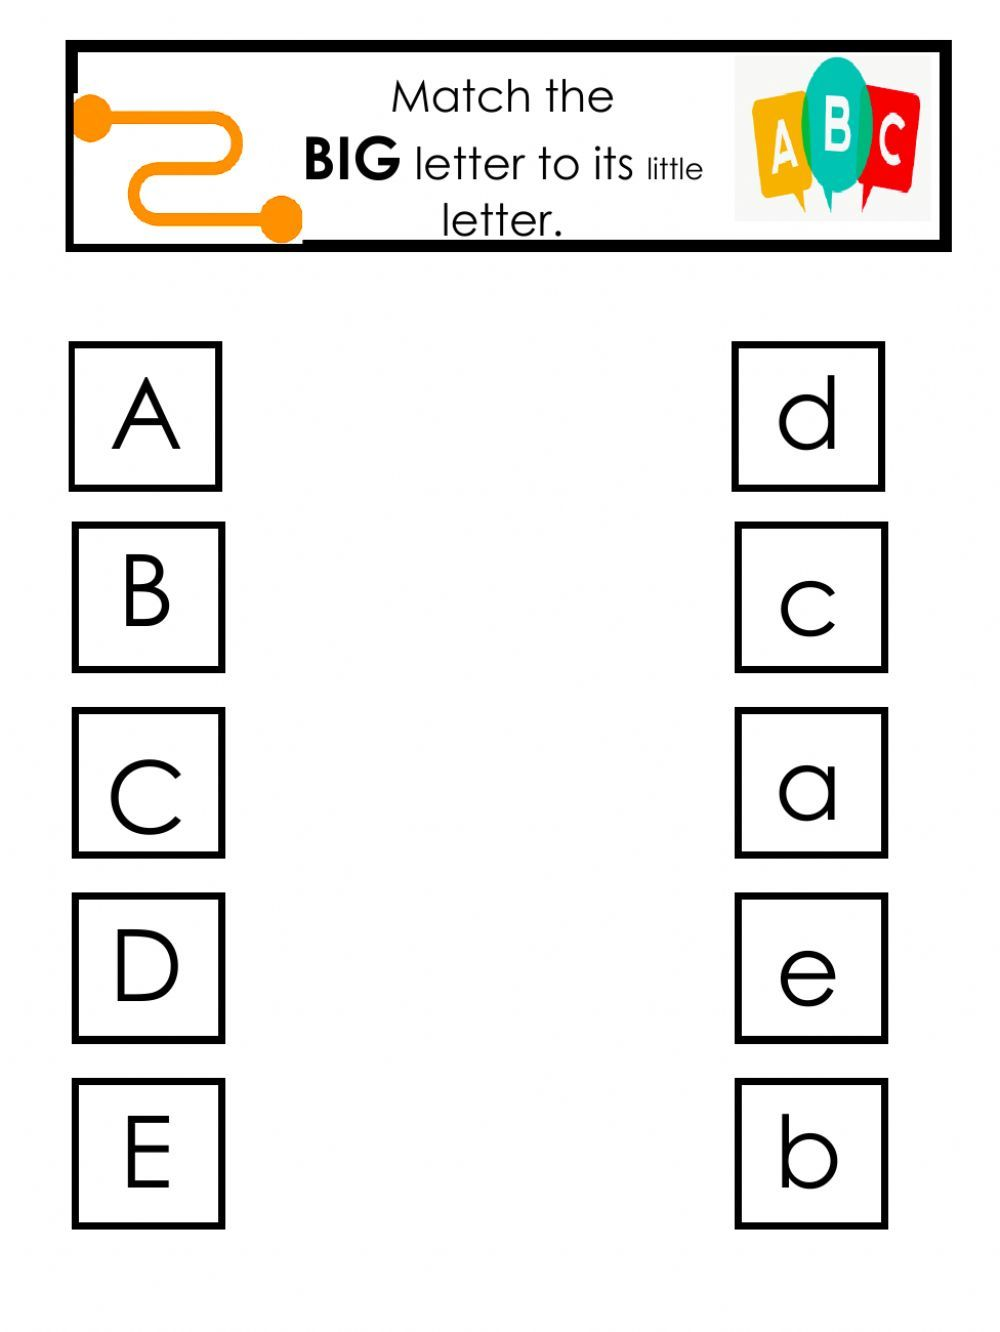 Match Big To Little Letters Interactive Worksheet Alphabet Matching Letter G Worksheets Letter Worksheets Letter matching worksheets for